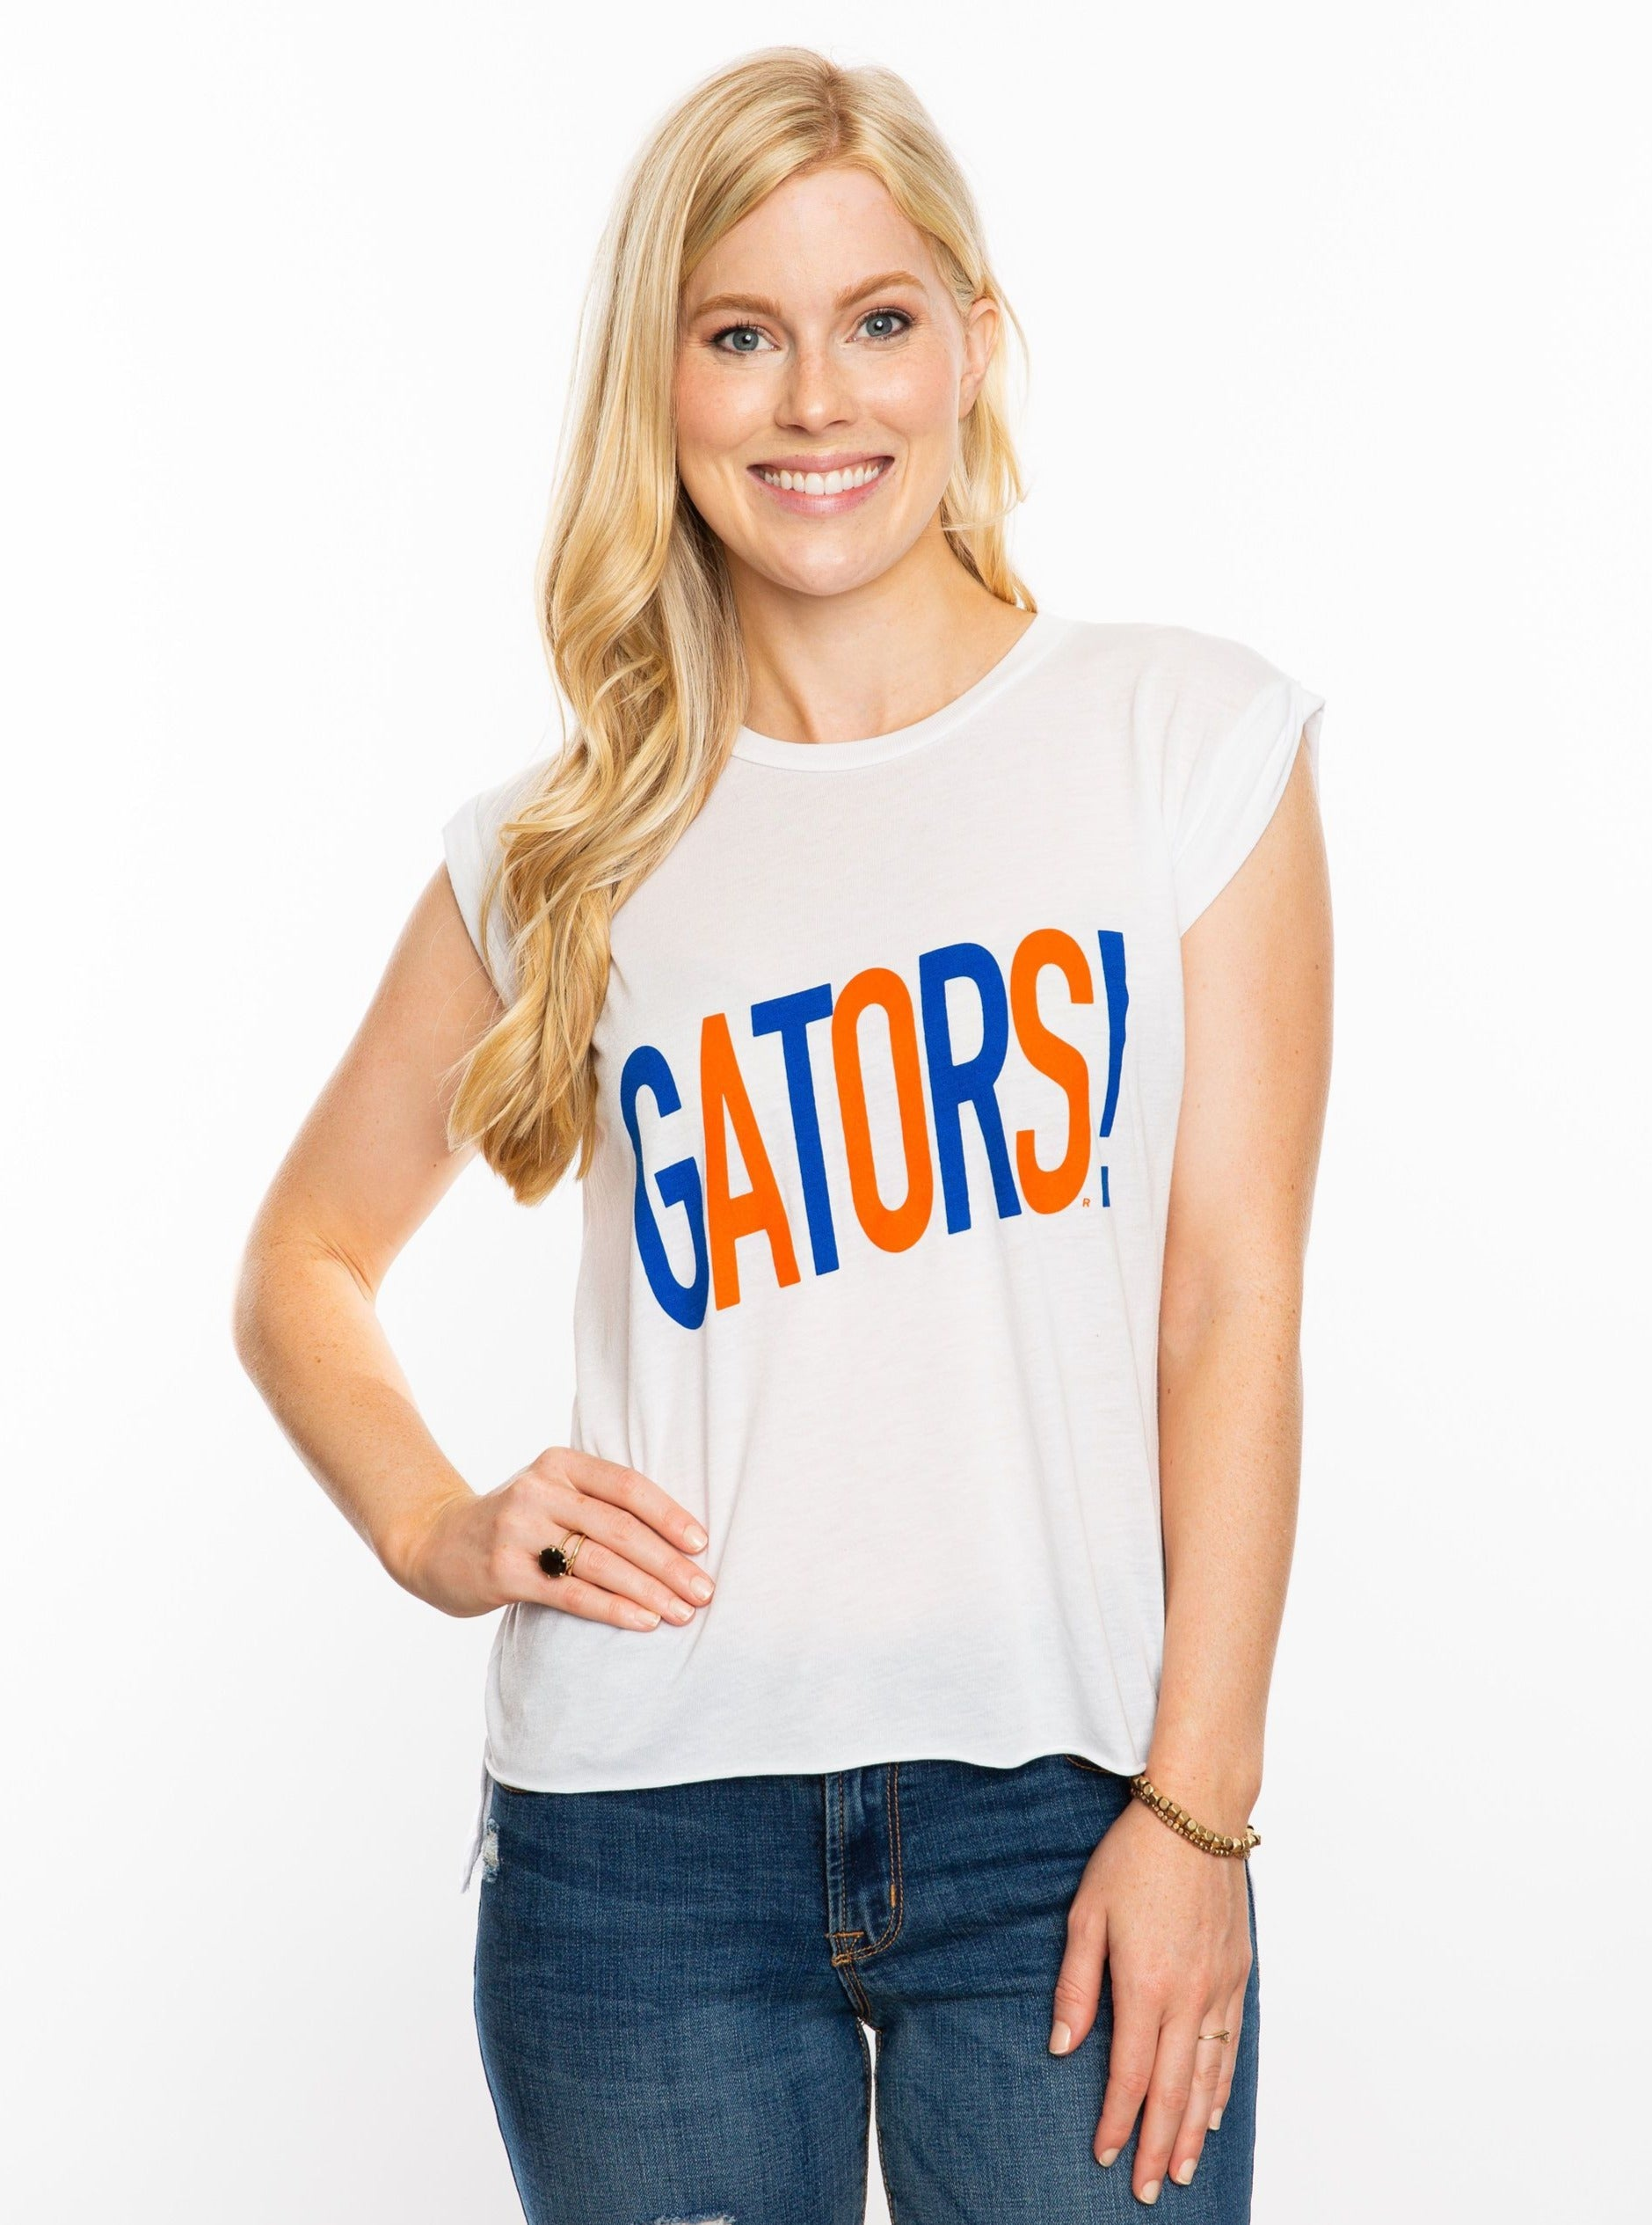 The Gators! Muscle Tee